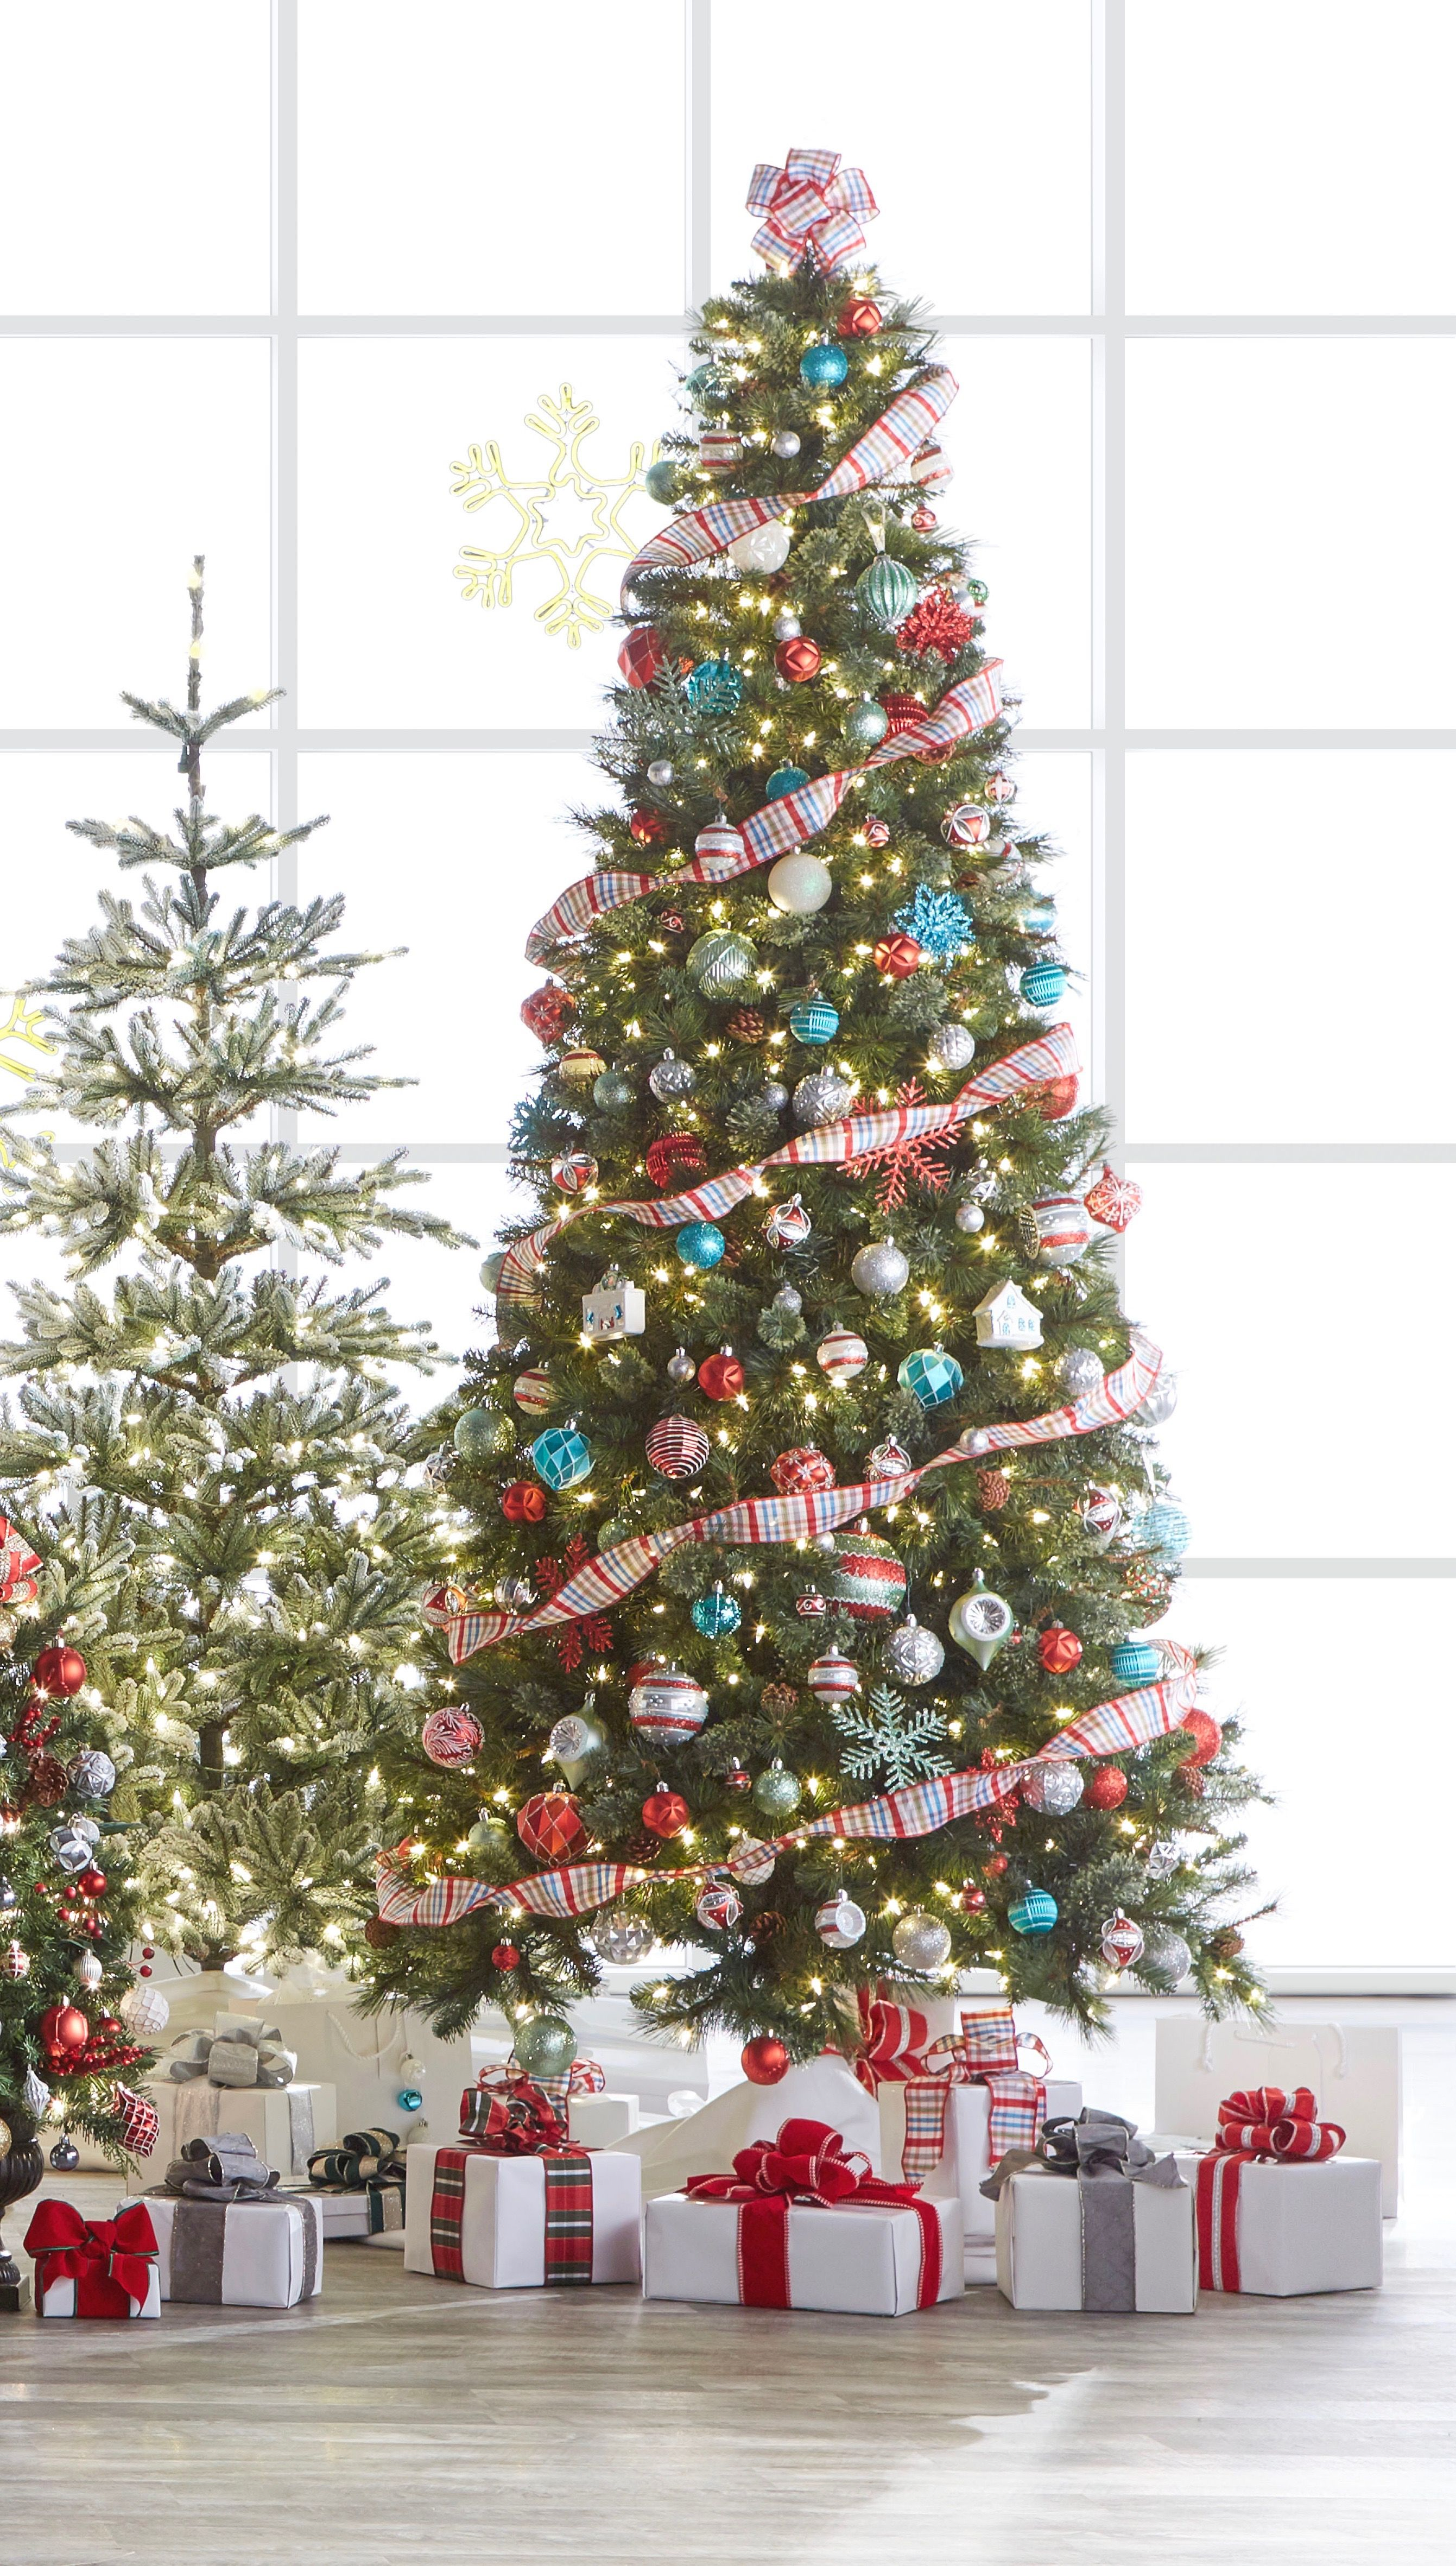 How To Decorate A Tree Christmas Tree Decorations Christmas Tree Diy Holiday Decor